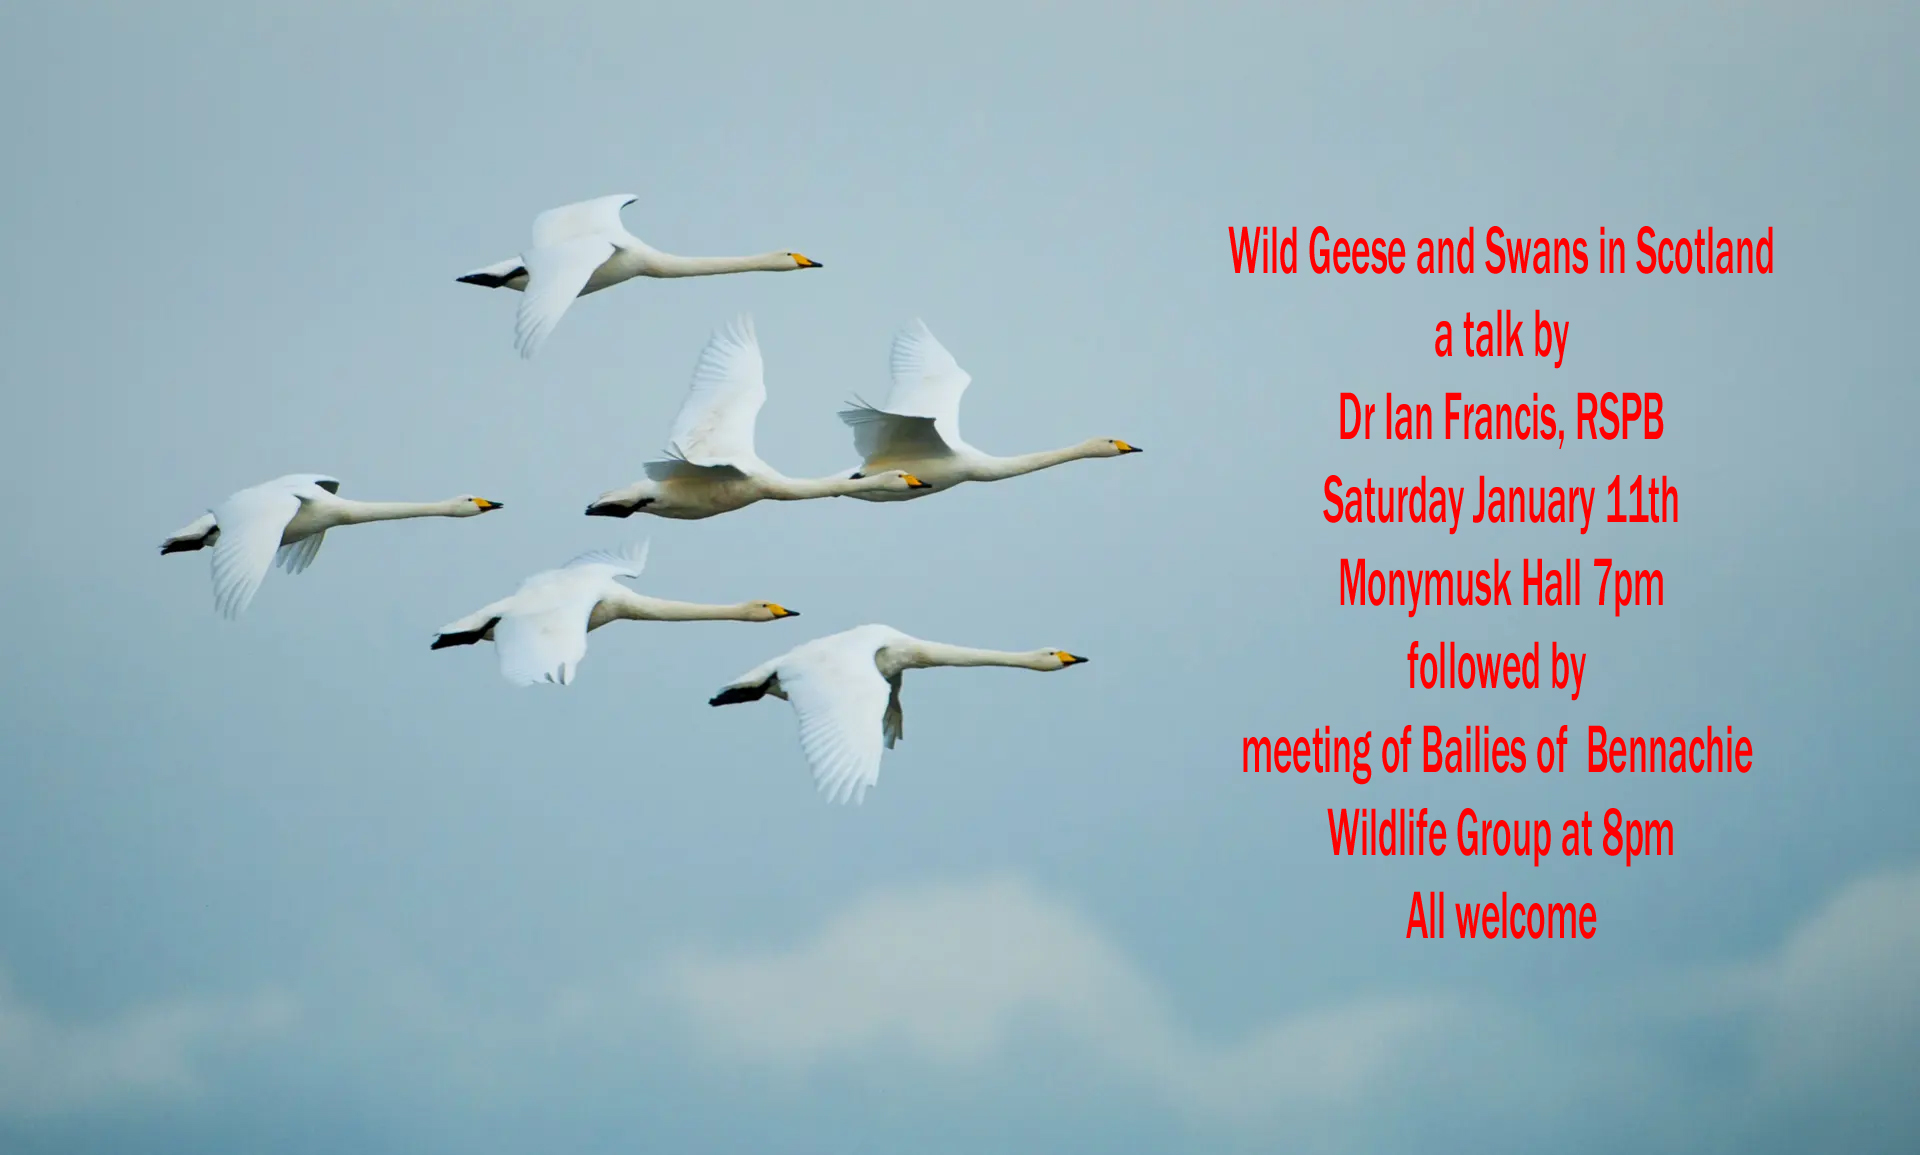 Wildlife Group: Talk on Wild Geese and Swans